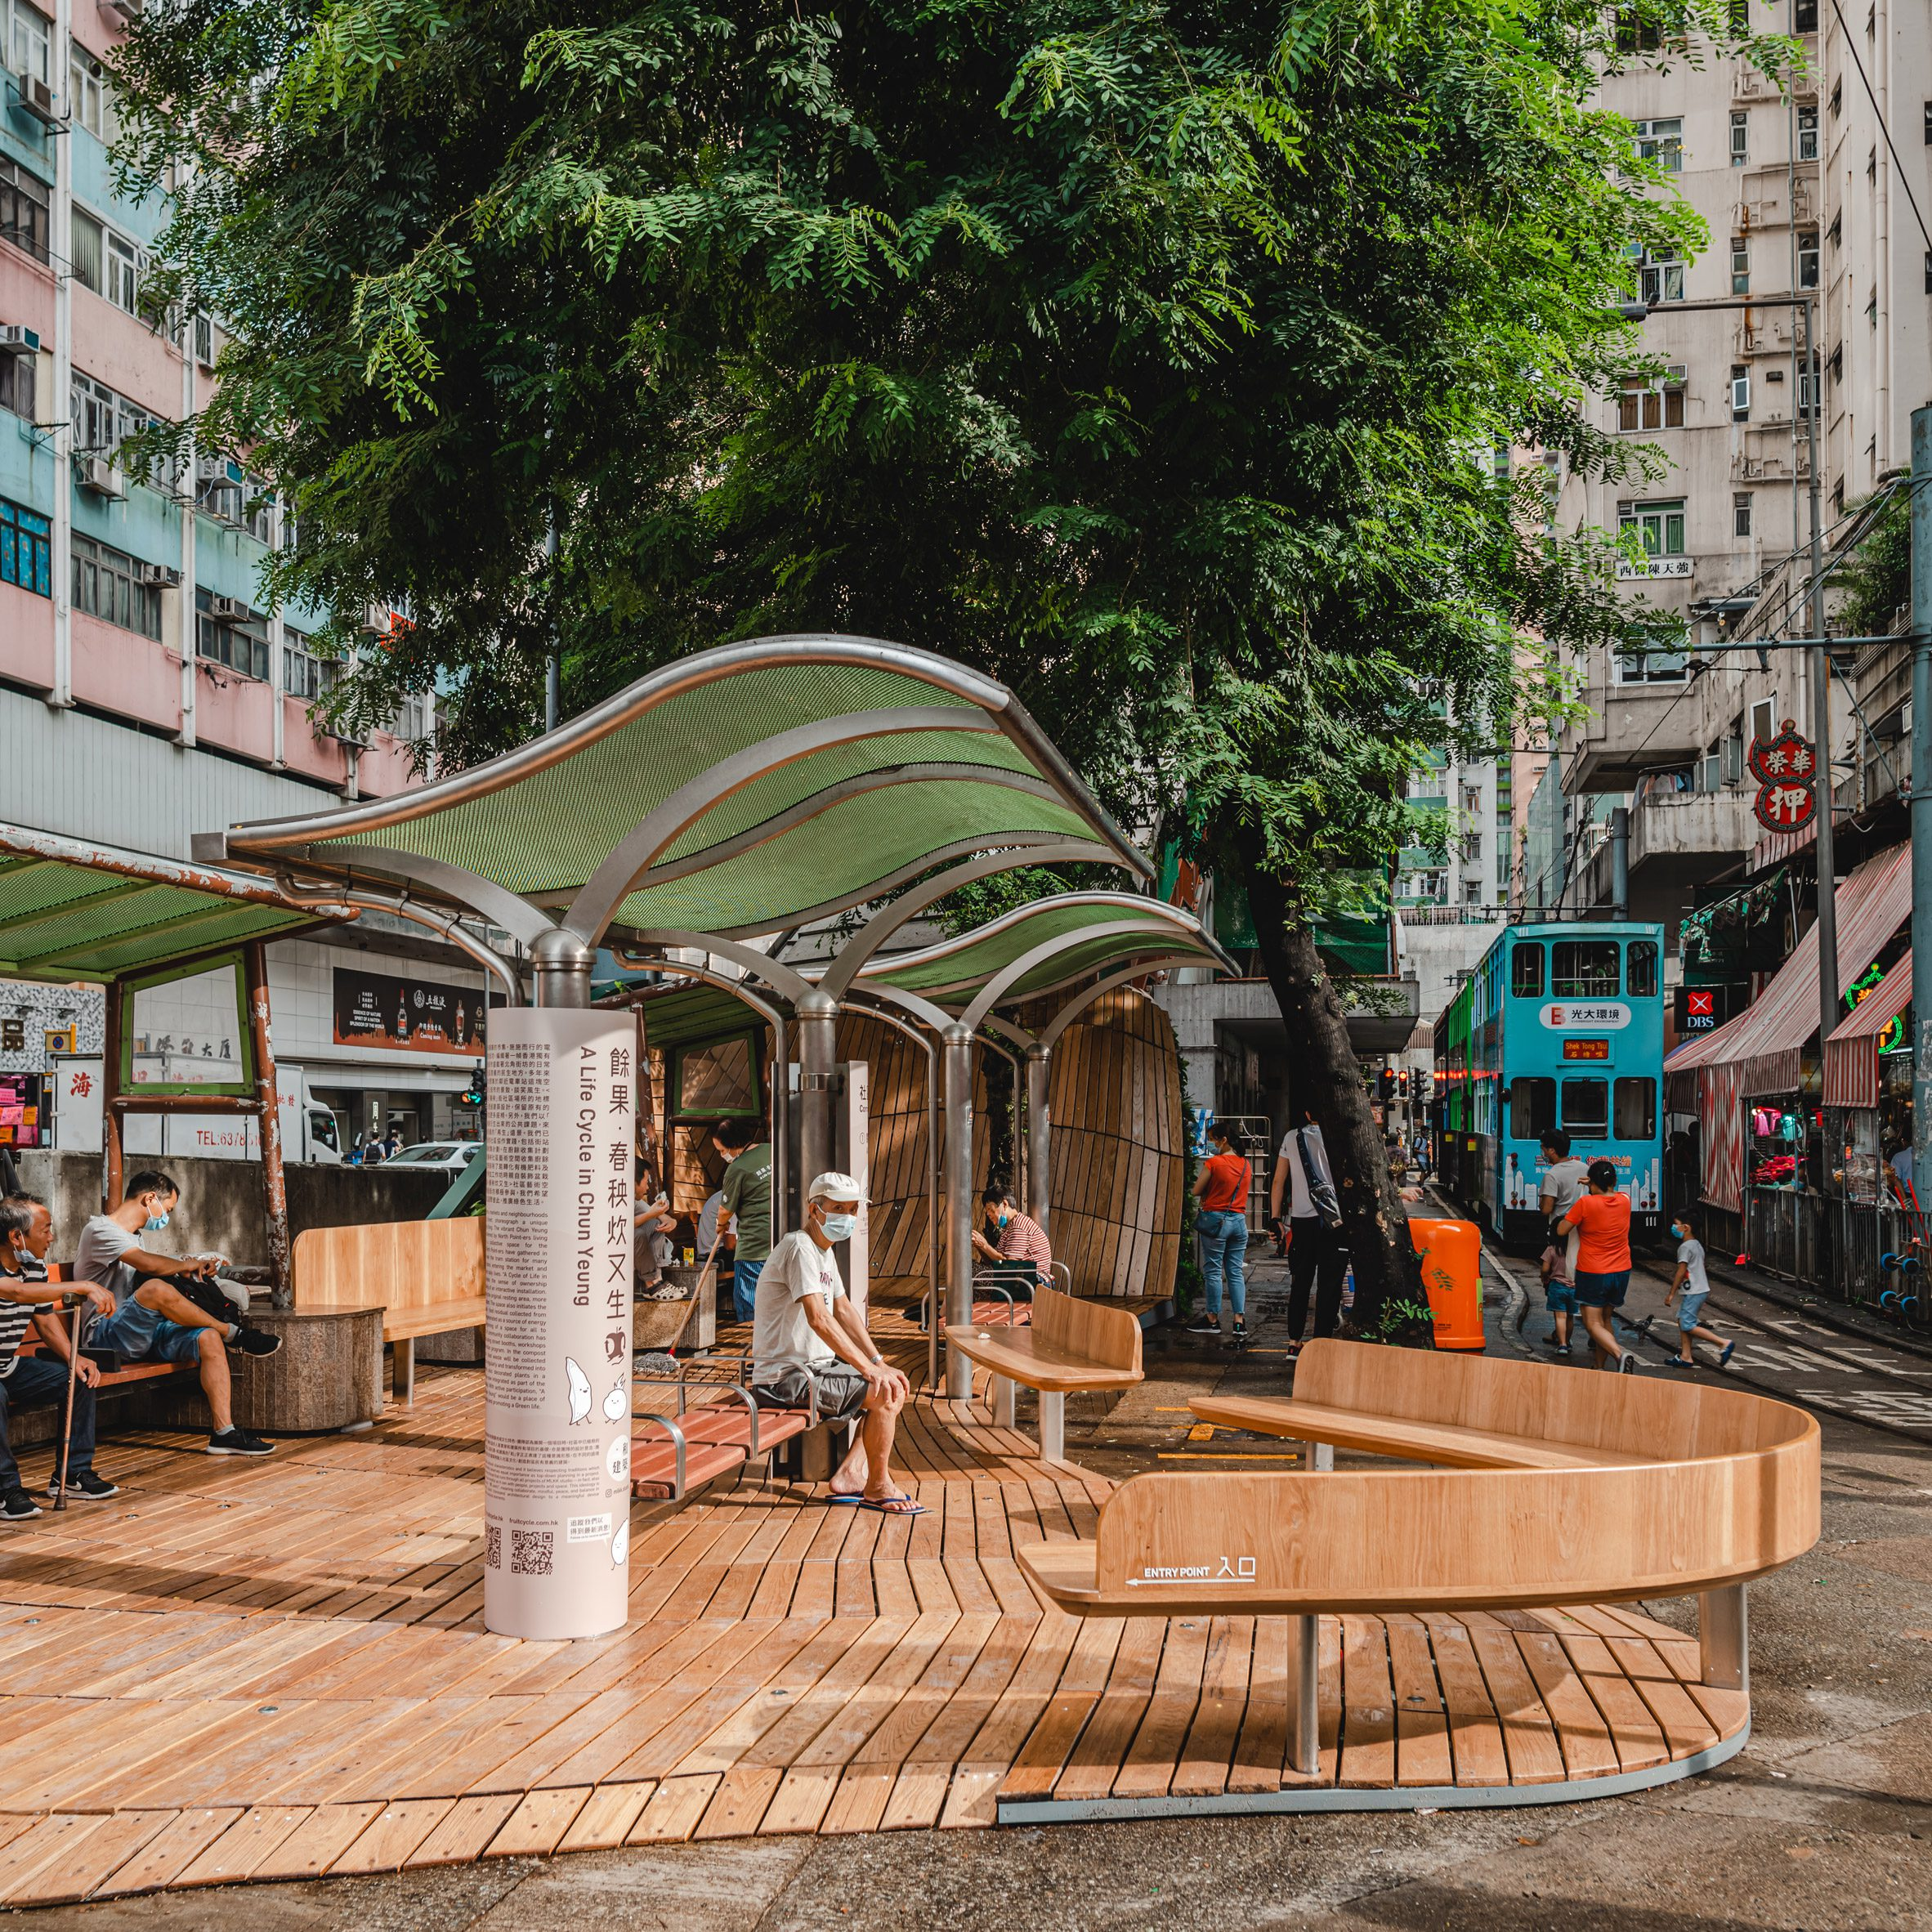 A photograph of a wooden installation called Cycle of Life in Hong Kong